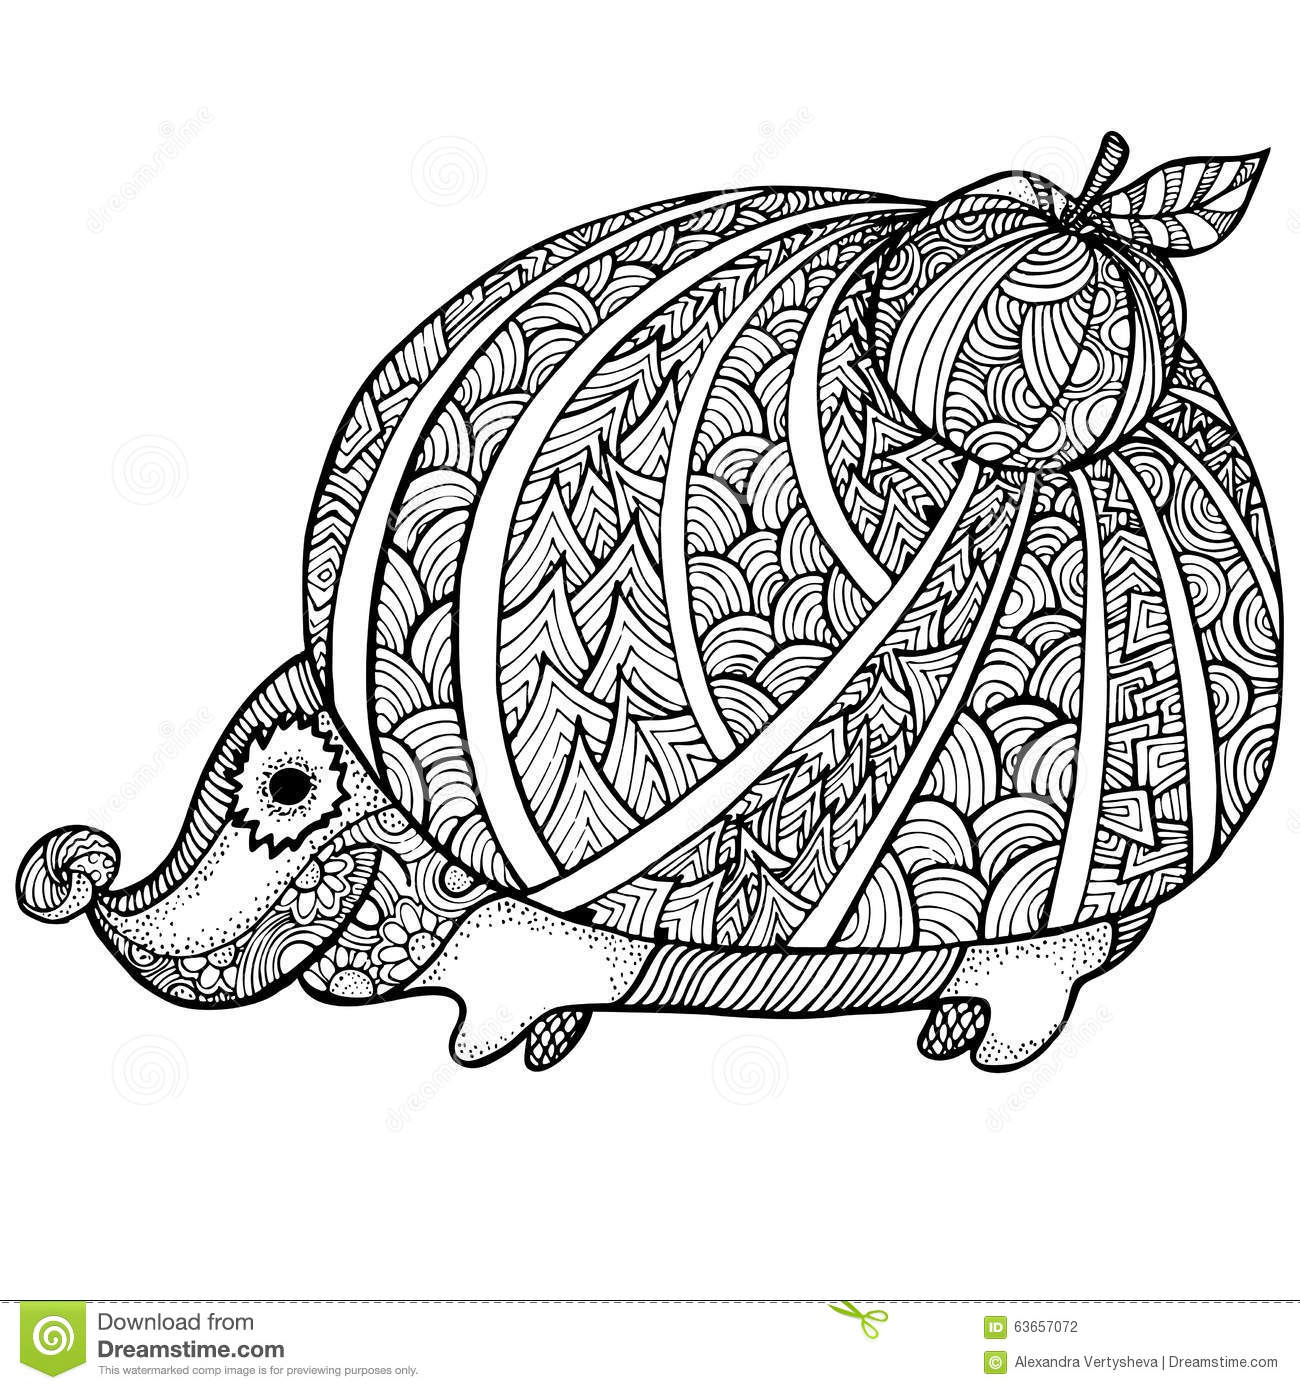 Stress Coloring Pages Animals : Zentangle stylized hedgehog adult anti stress coloring